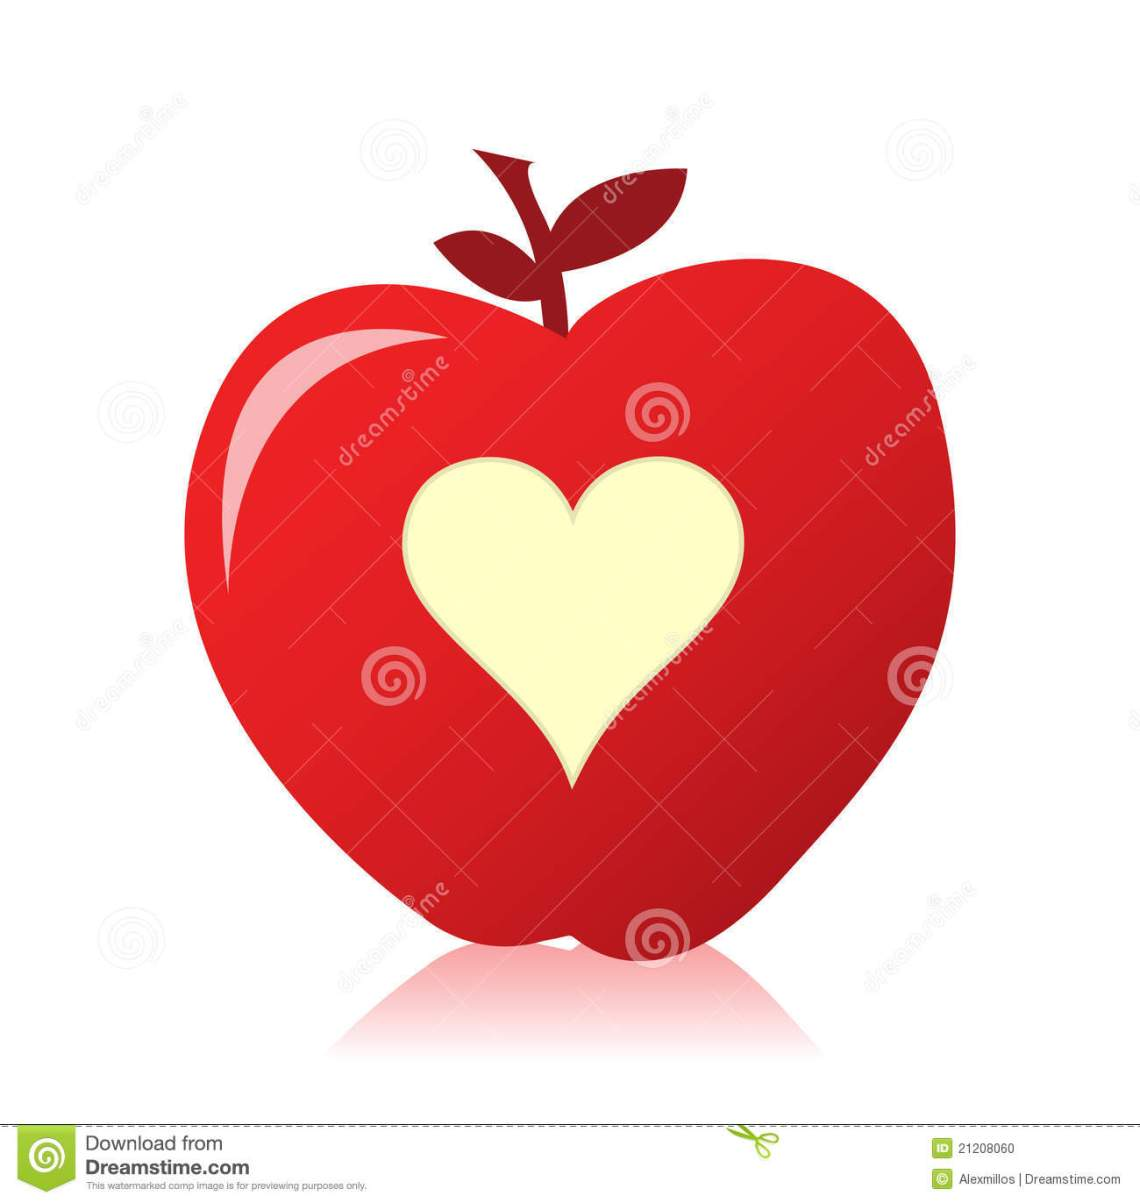 Download Image Of A Beautiful Red Apple With A Heart Stock Vector ...